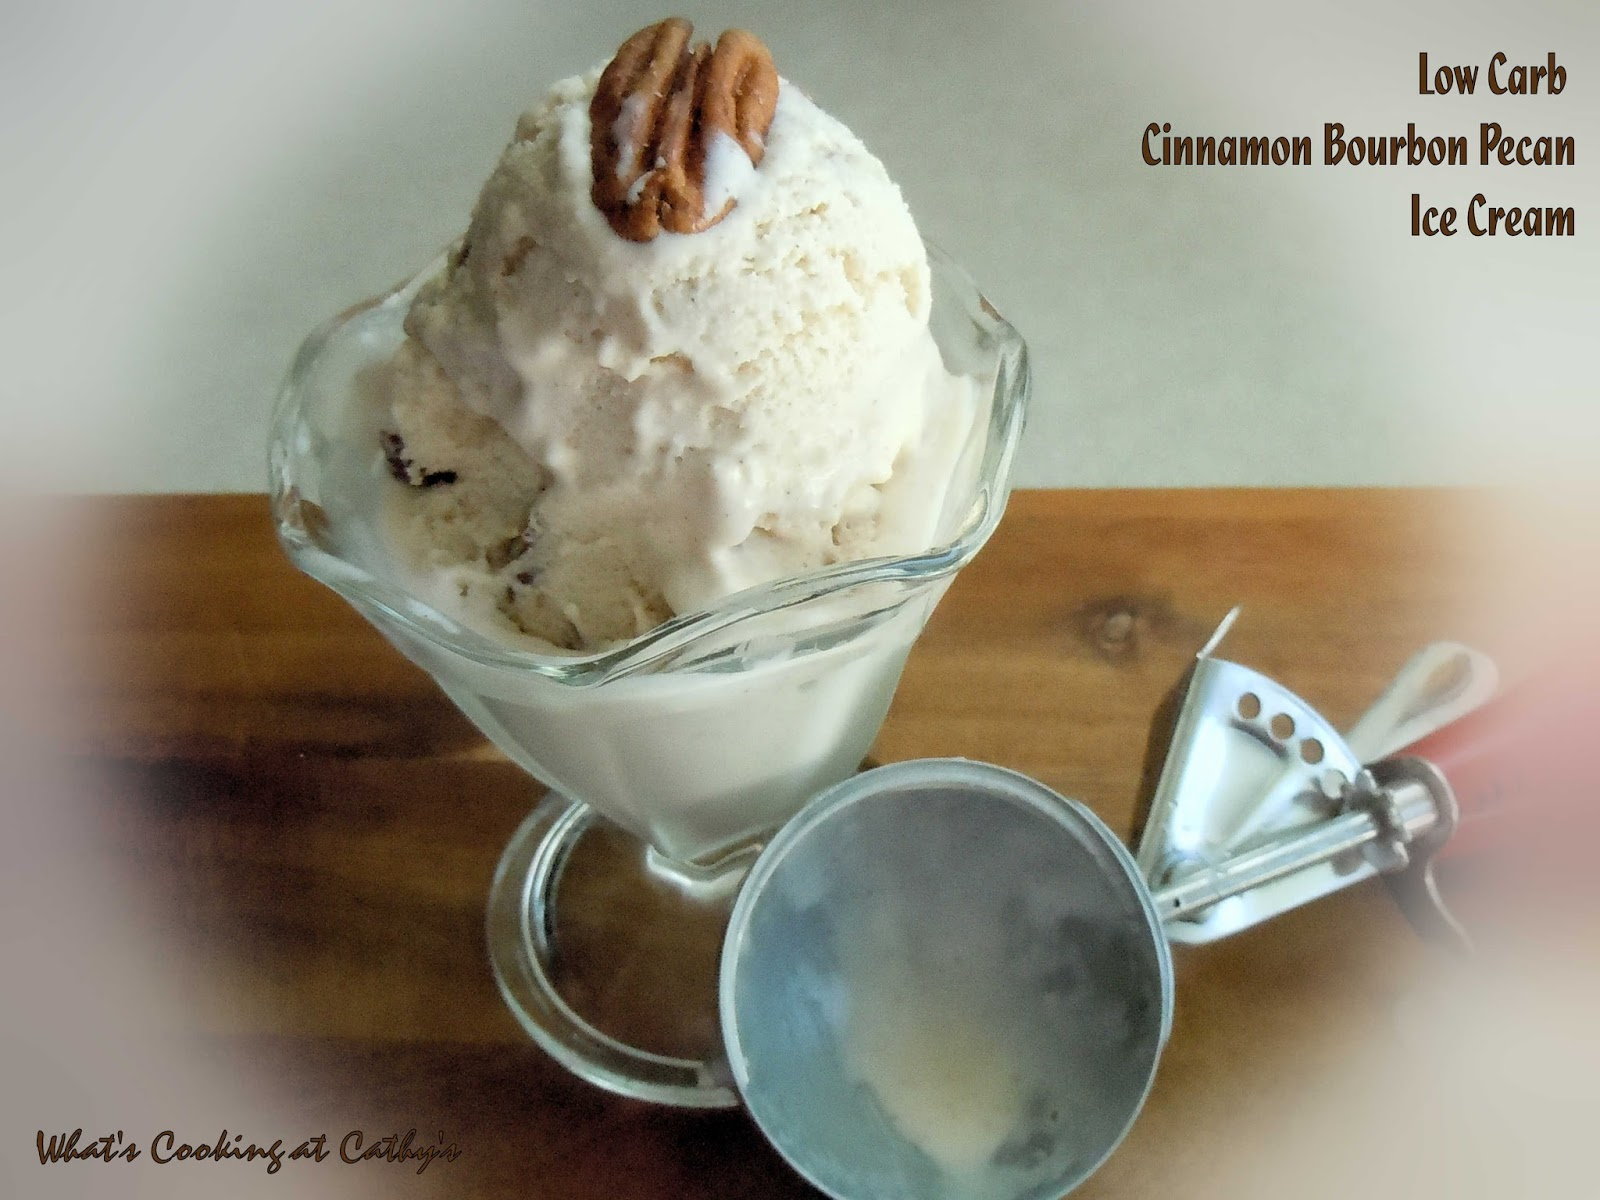 Whats cooking at cathys low carb cinnamon bourbon pecan ice cream ive been on a roll making ice cream as summer time rapidly approaches after making the mint chip i barely had it in the freezer before i was dreaming up ccuart Images